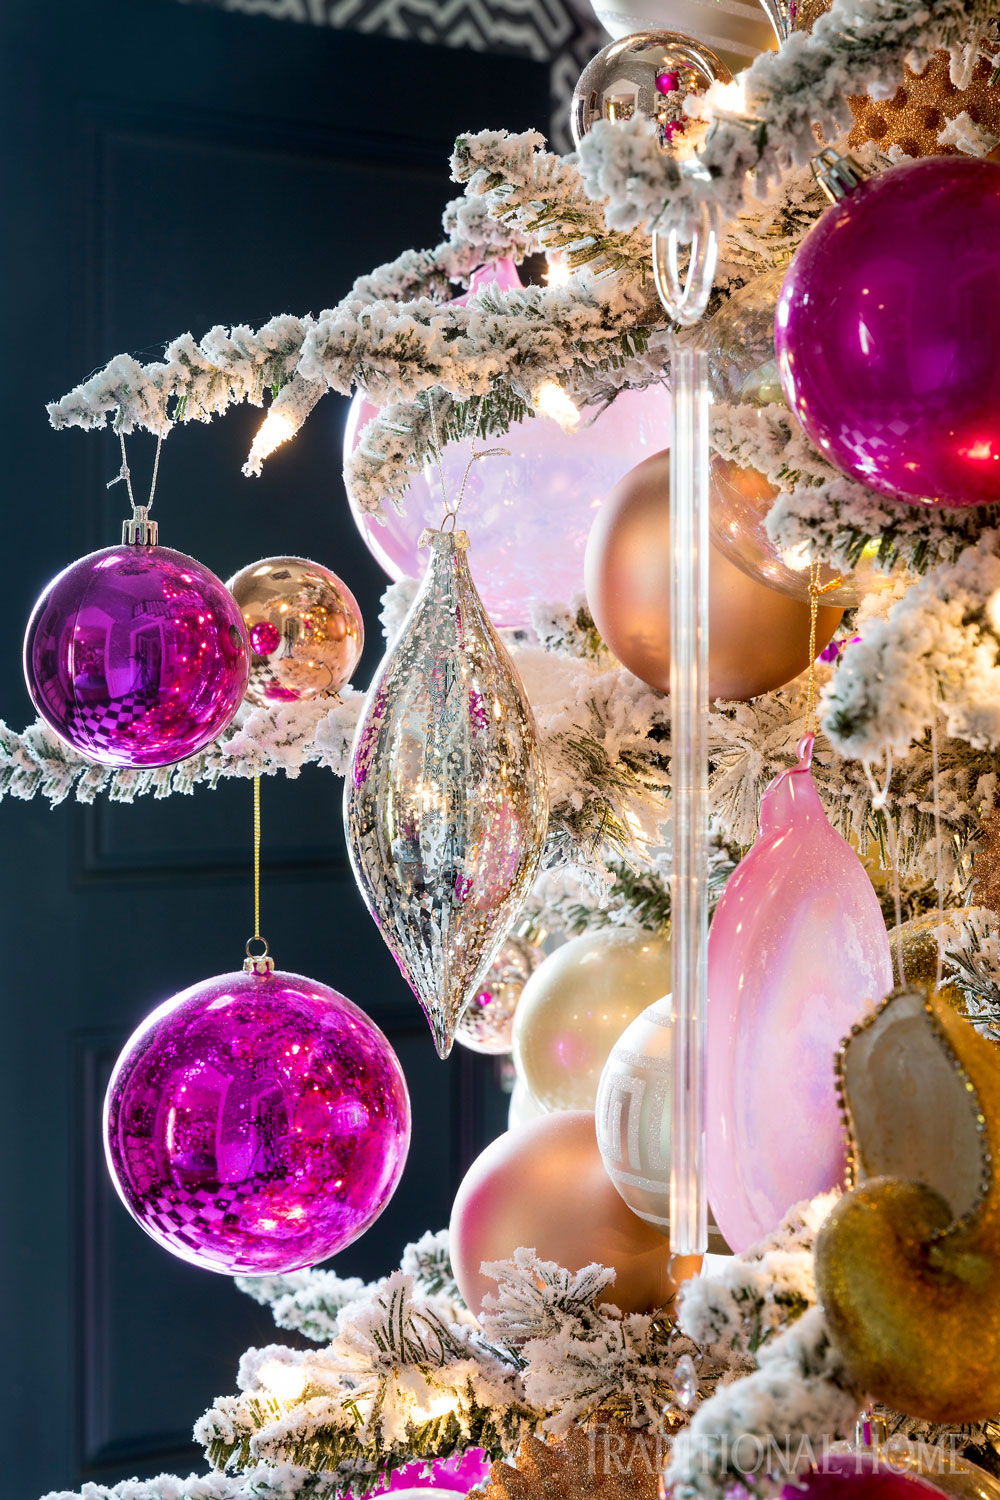 long slender icicles blend with mercury glass ornaments and glass balls in varying shades of pink ivory and champagne